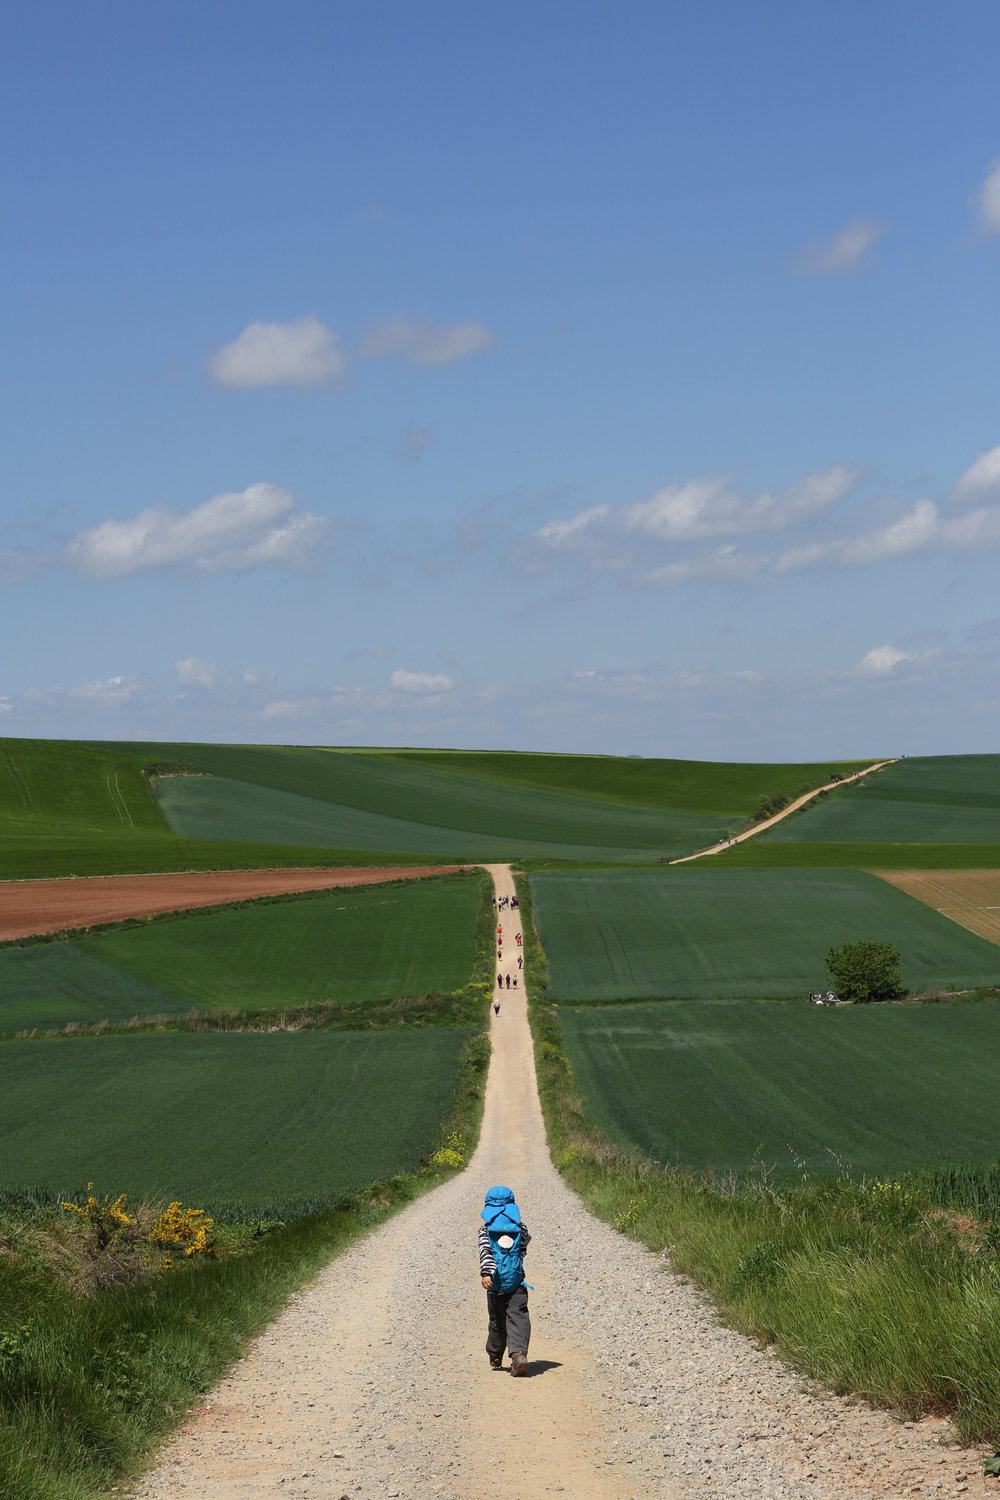 A young Korean boy takes off ahead of his parents while hiking 800kms along the Camino de Santiago in Spain.